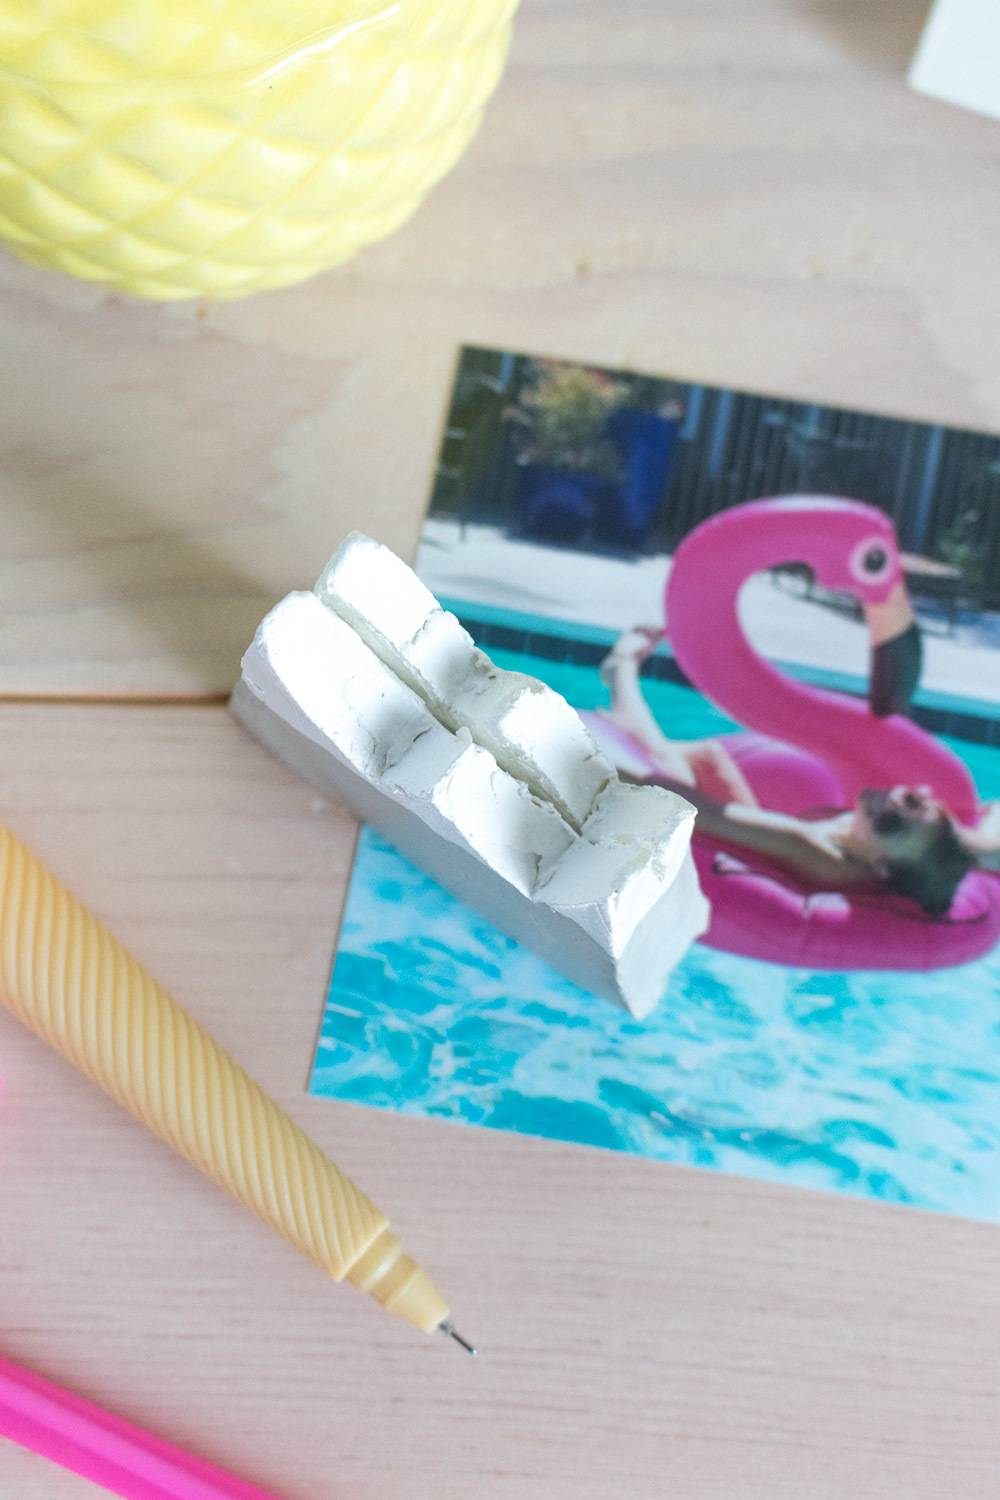 Make a Clay Mountain Photo Holder to Display your Favorite Photos